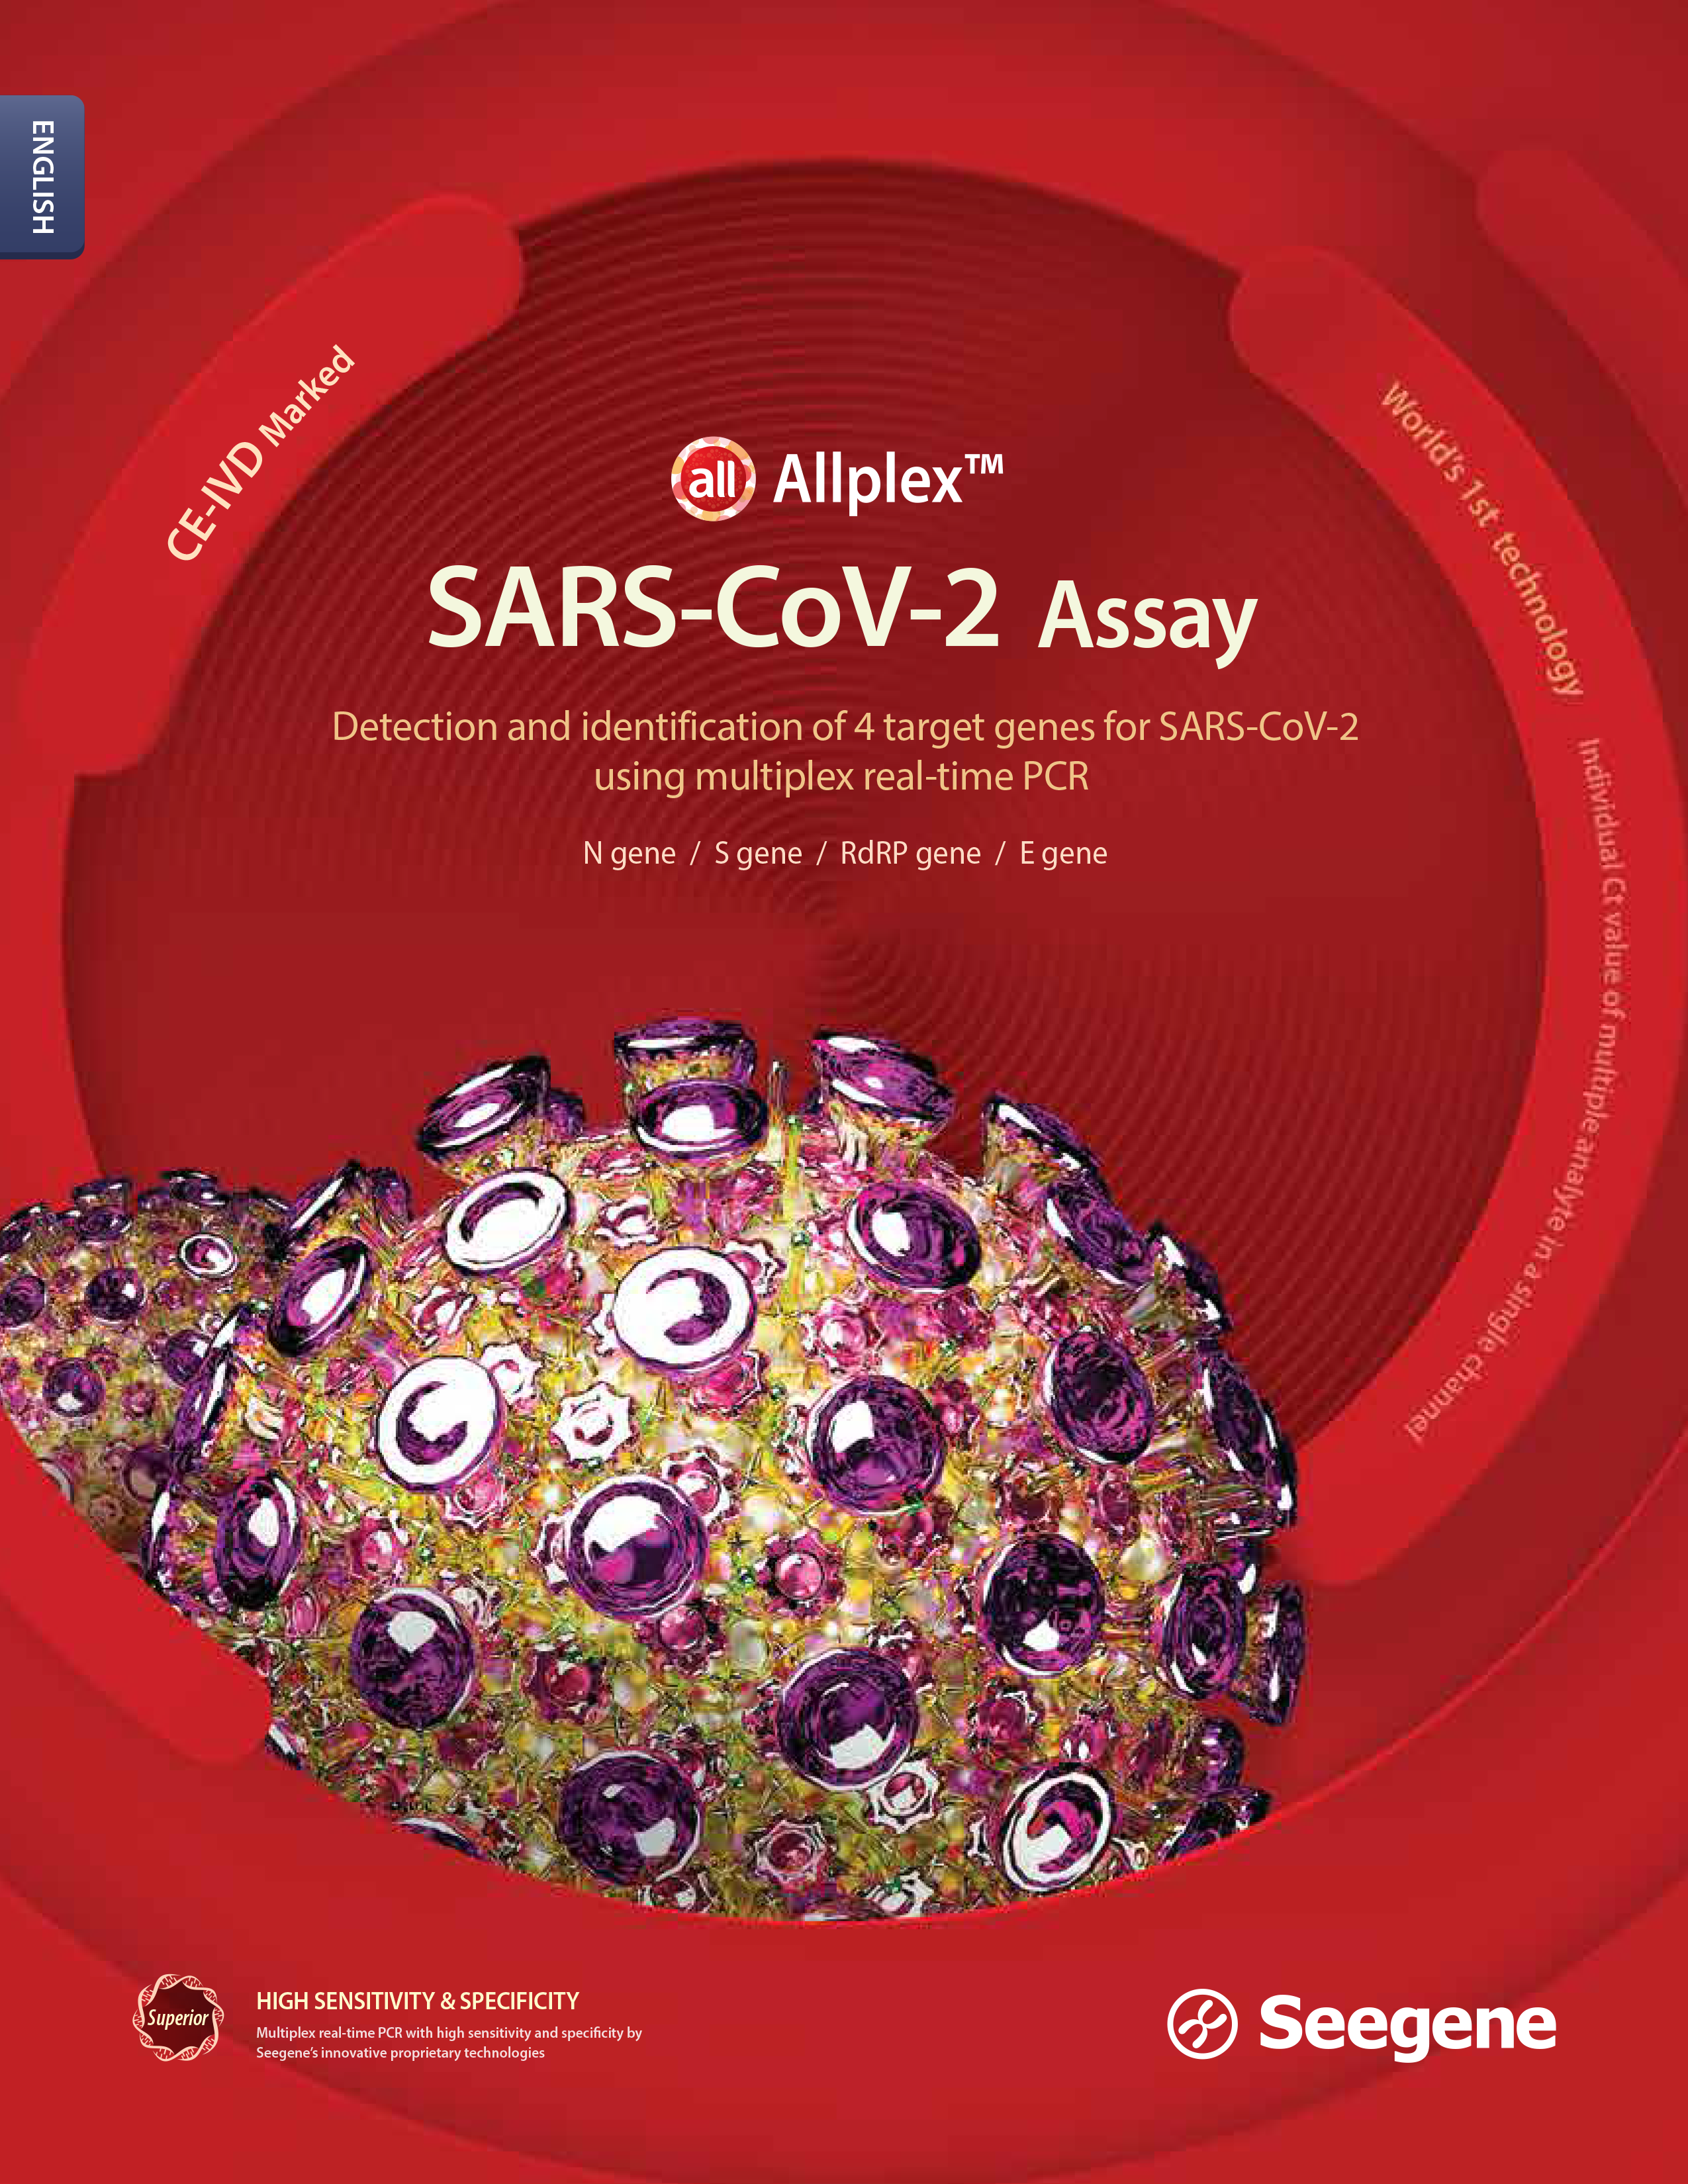 Allplex™ SARS-CoV-2 Assay